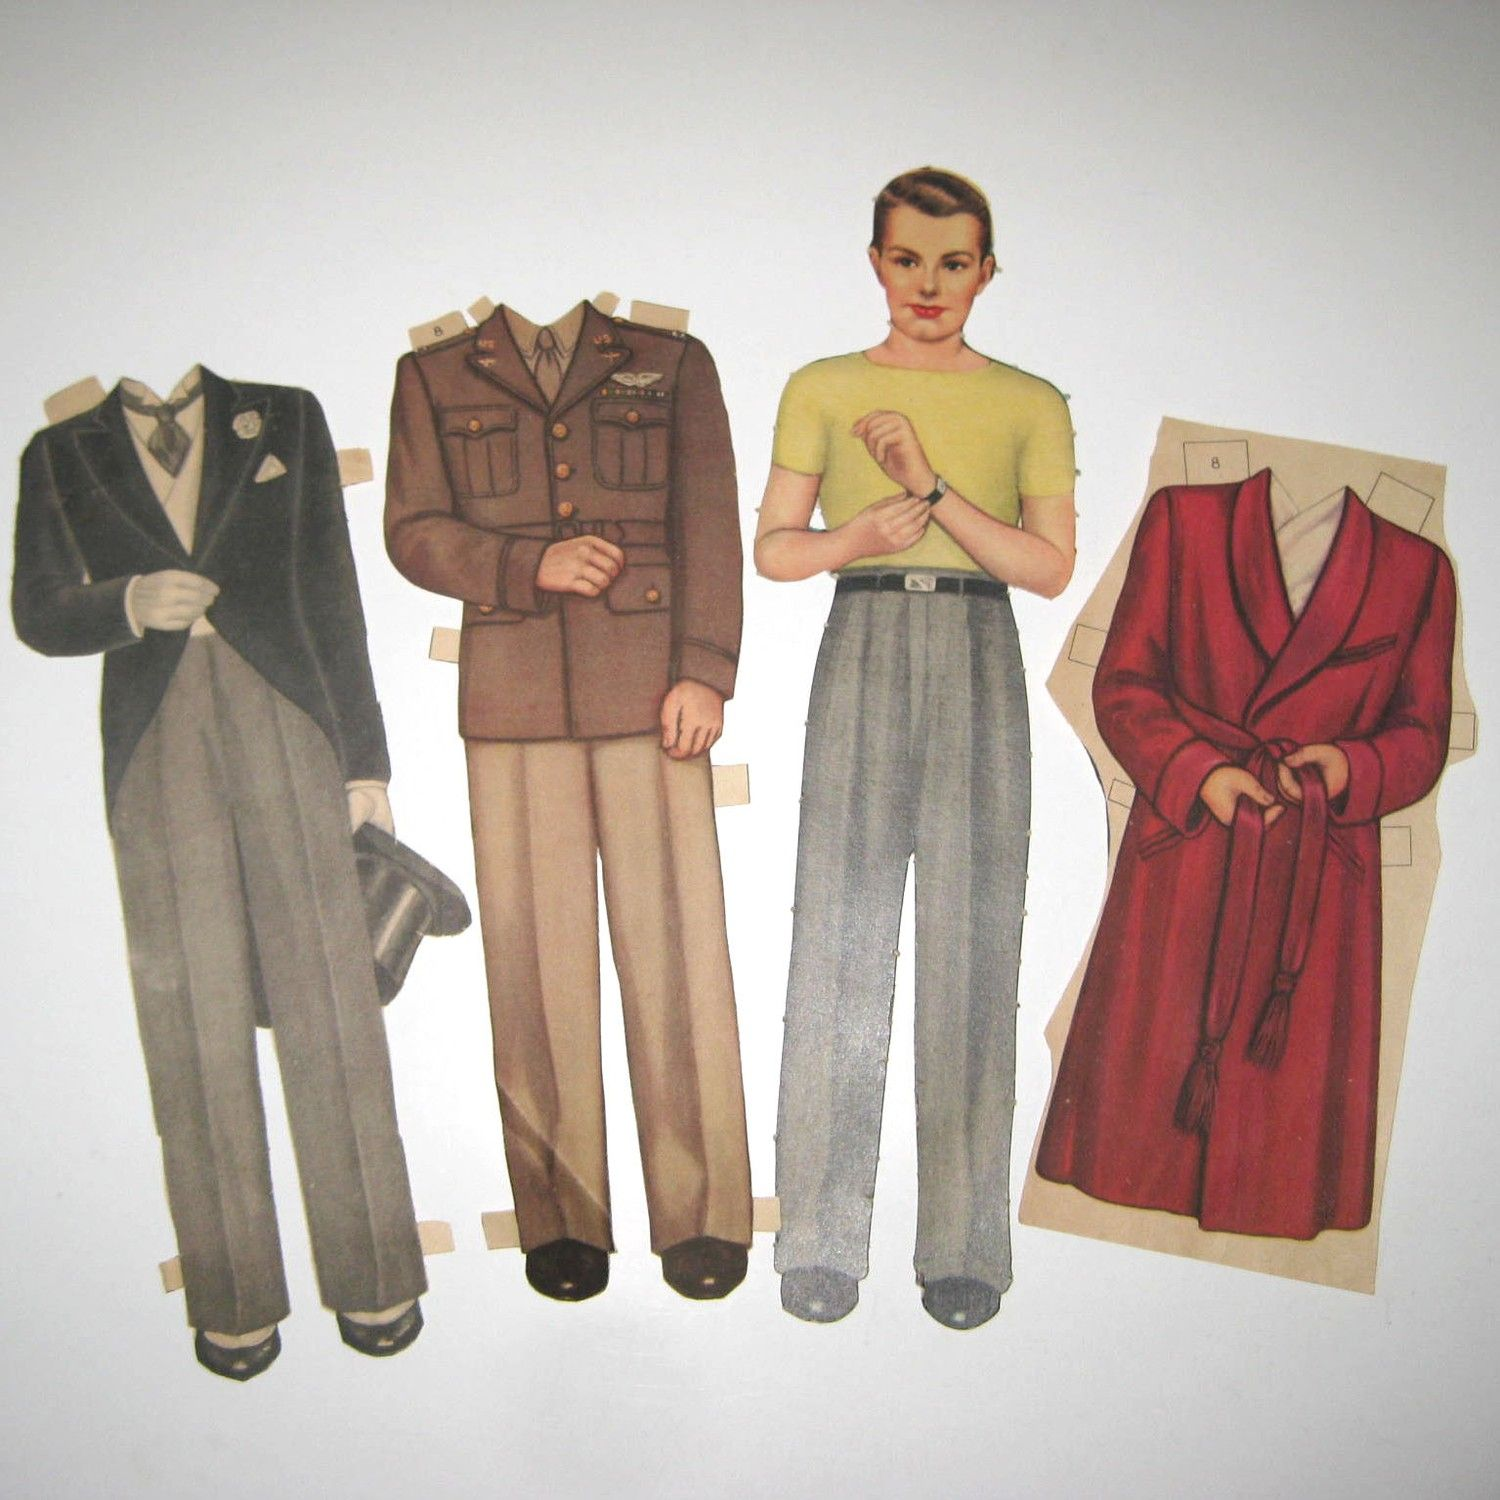 Vintage 1940s Man And Outfits By Queen Holden Paper Dolls Paper Dolls Vintage Paper Dolls Paperdolls